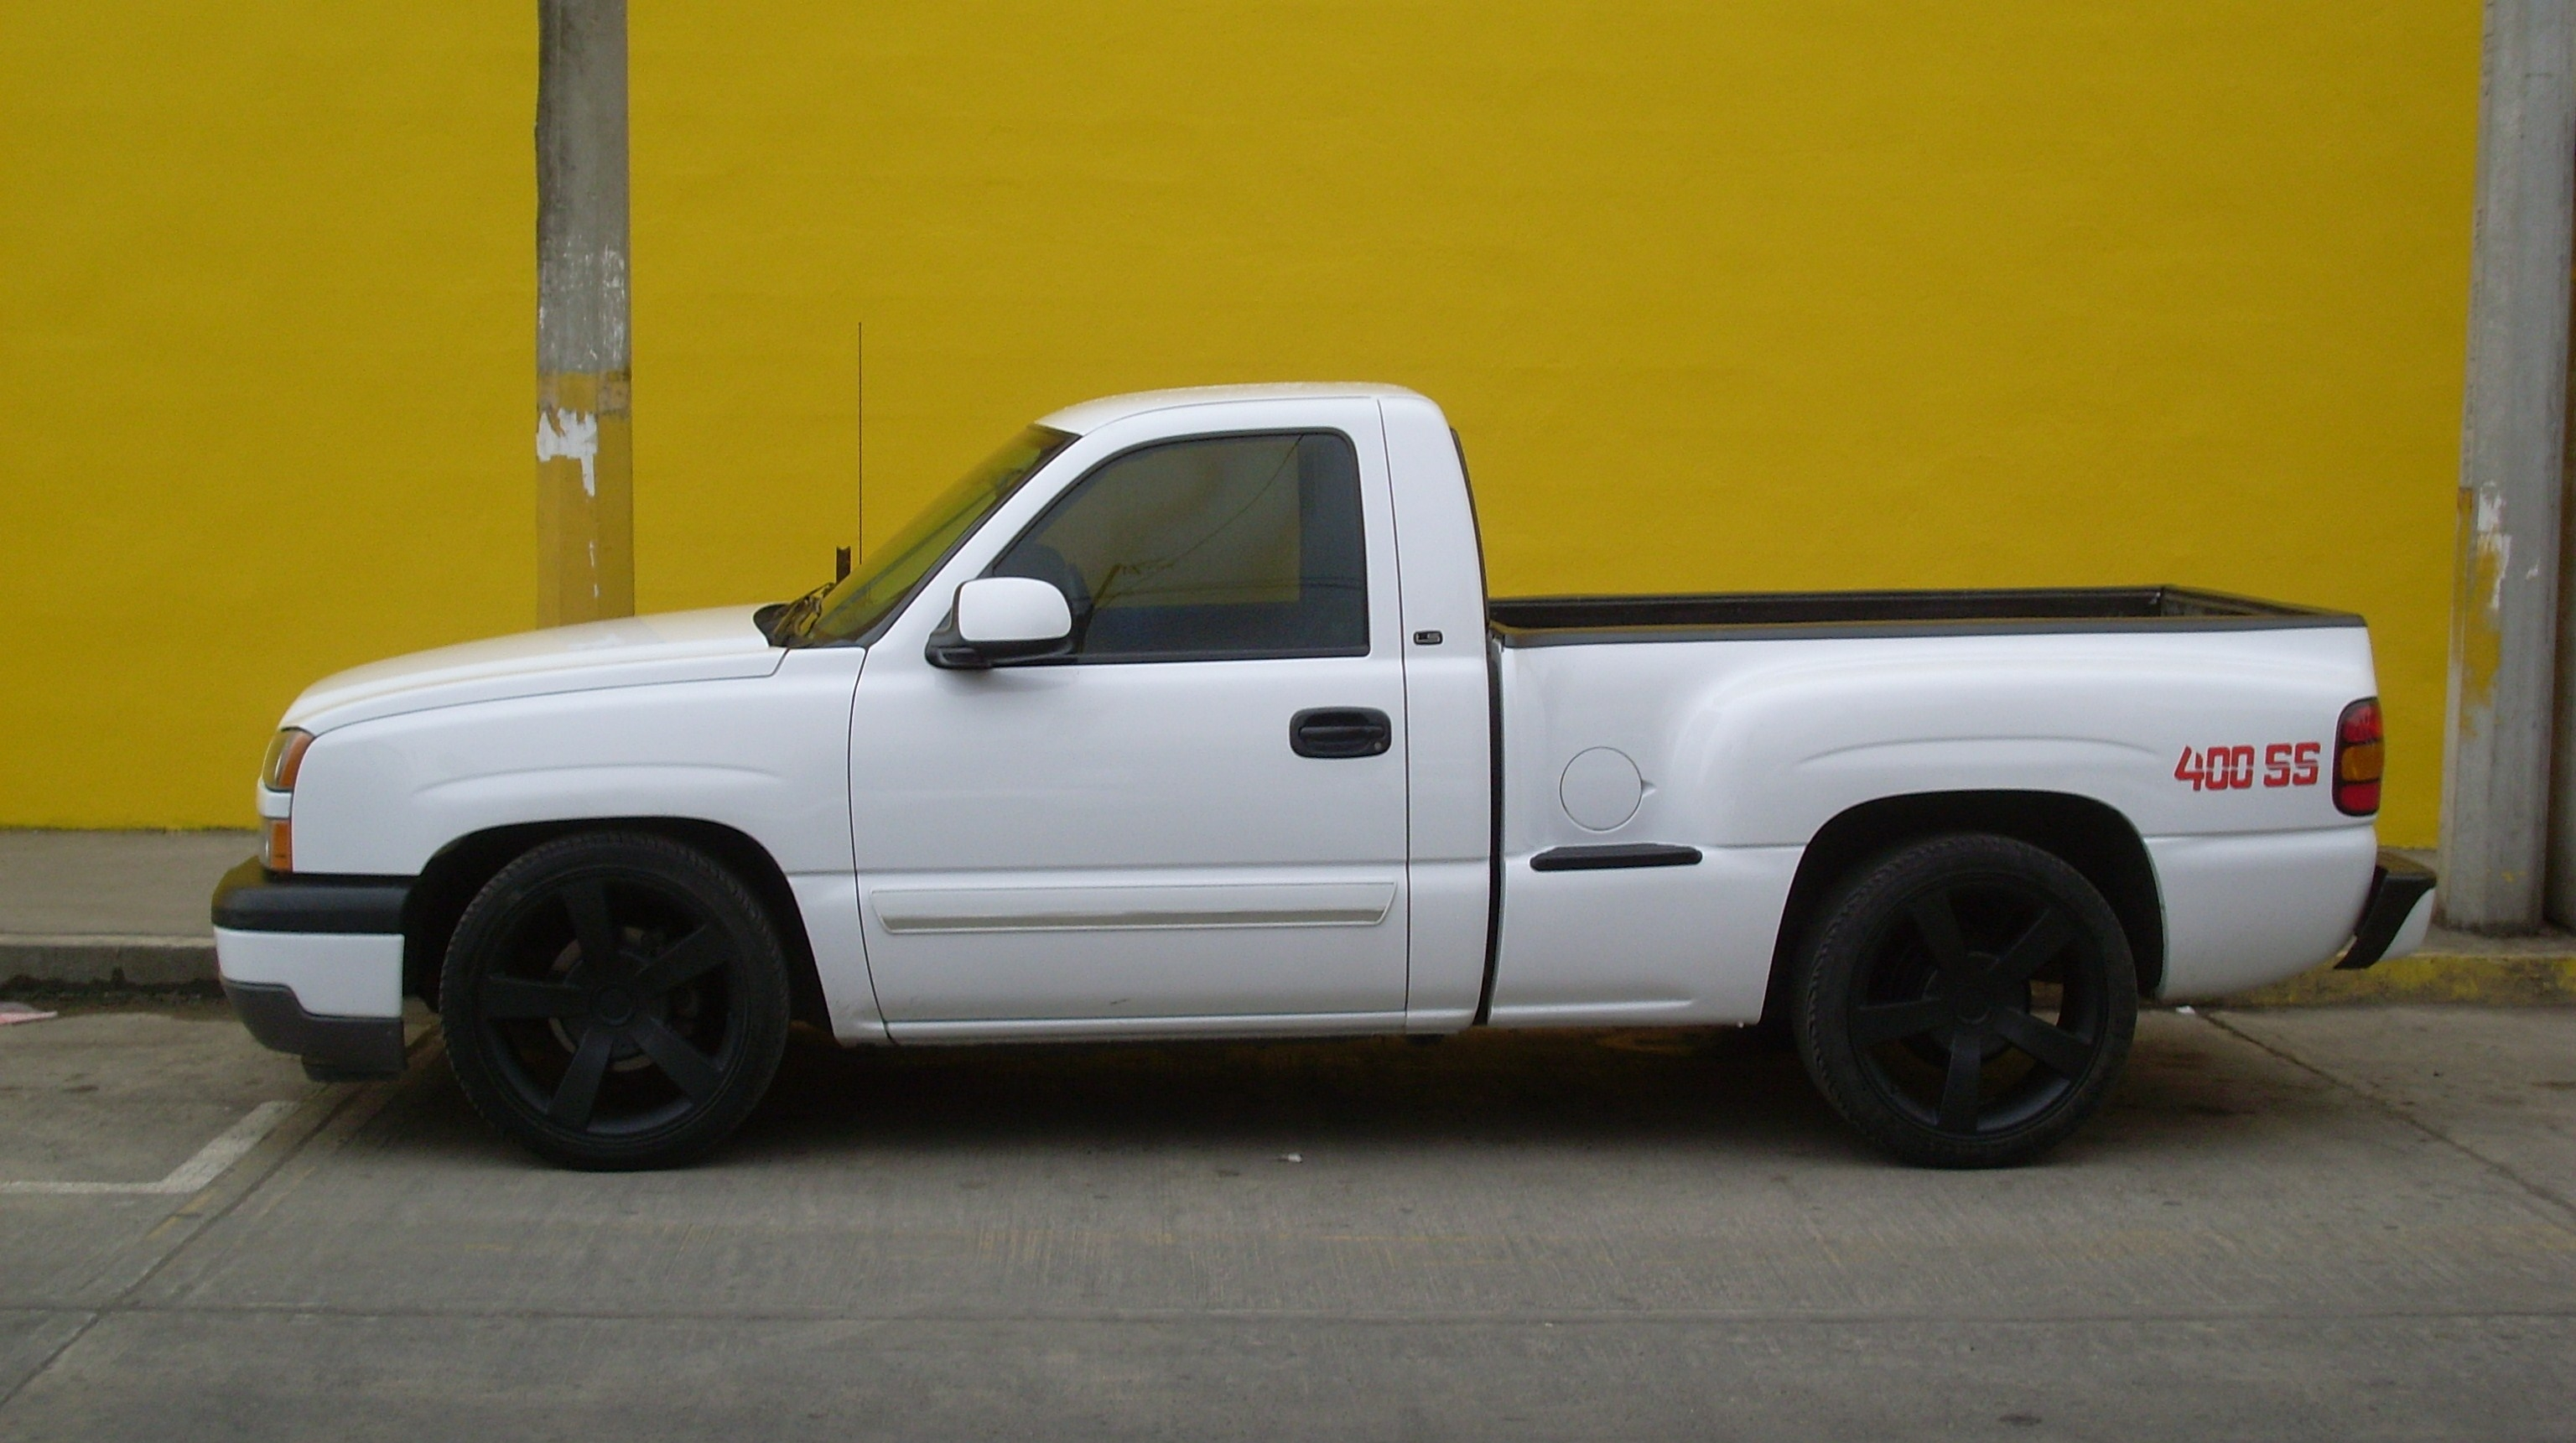 400ssgarces 2005 Chevrolet Silverado 1500 Regular Cab 14427437